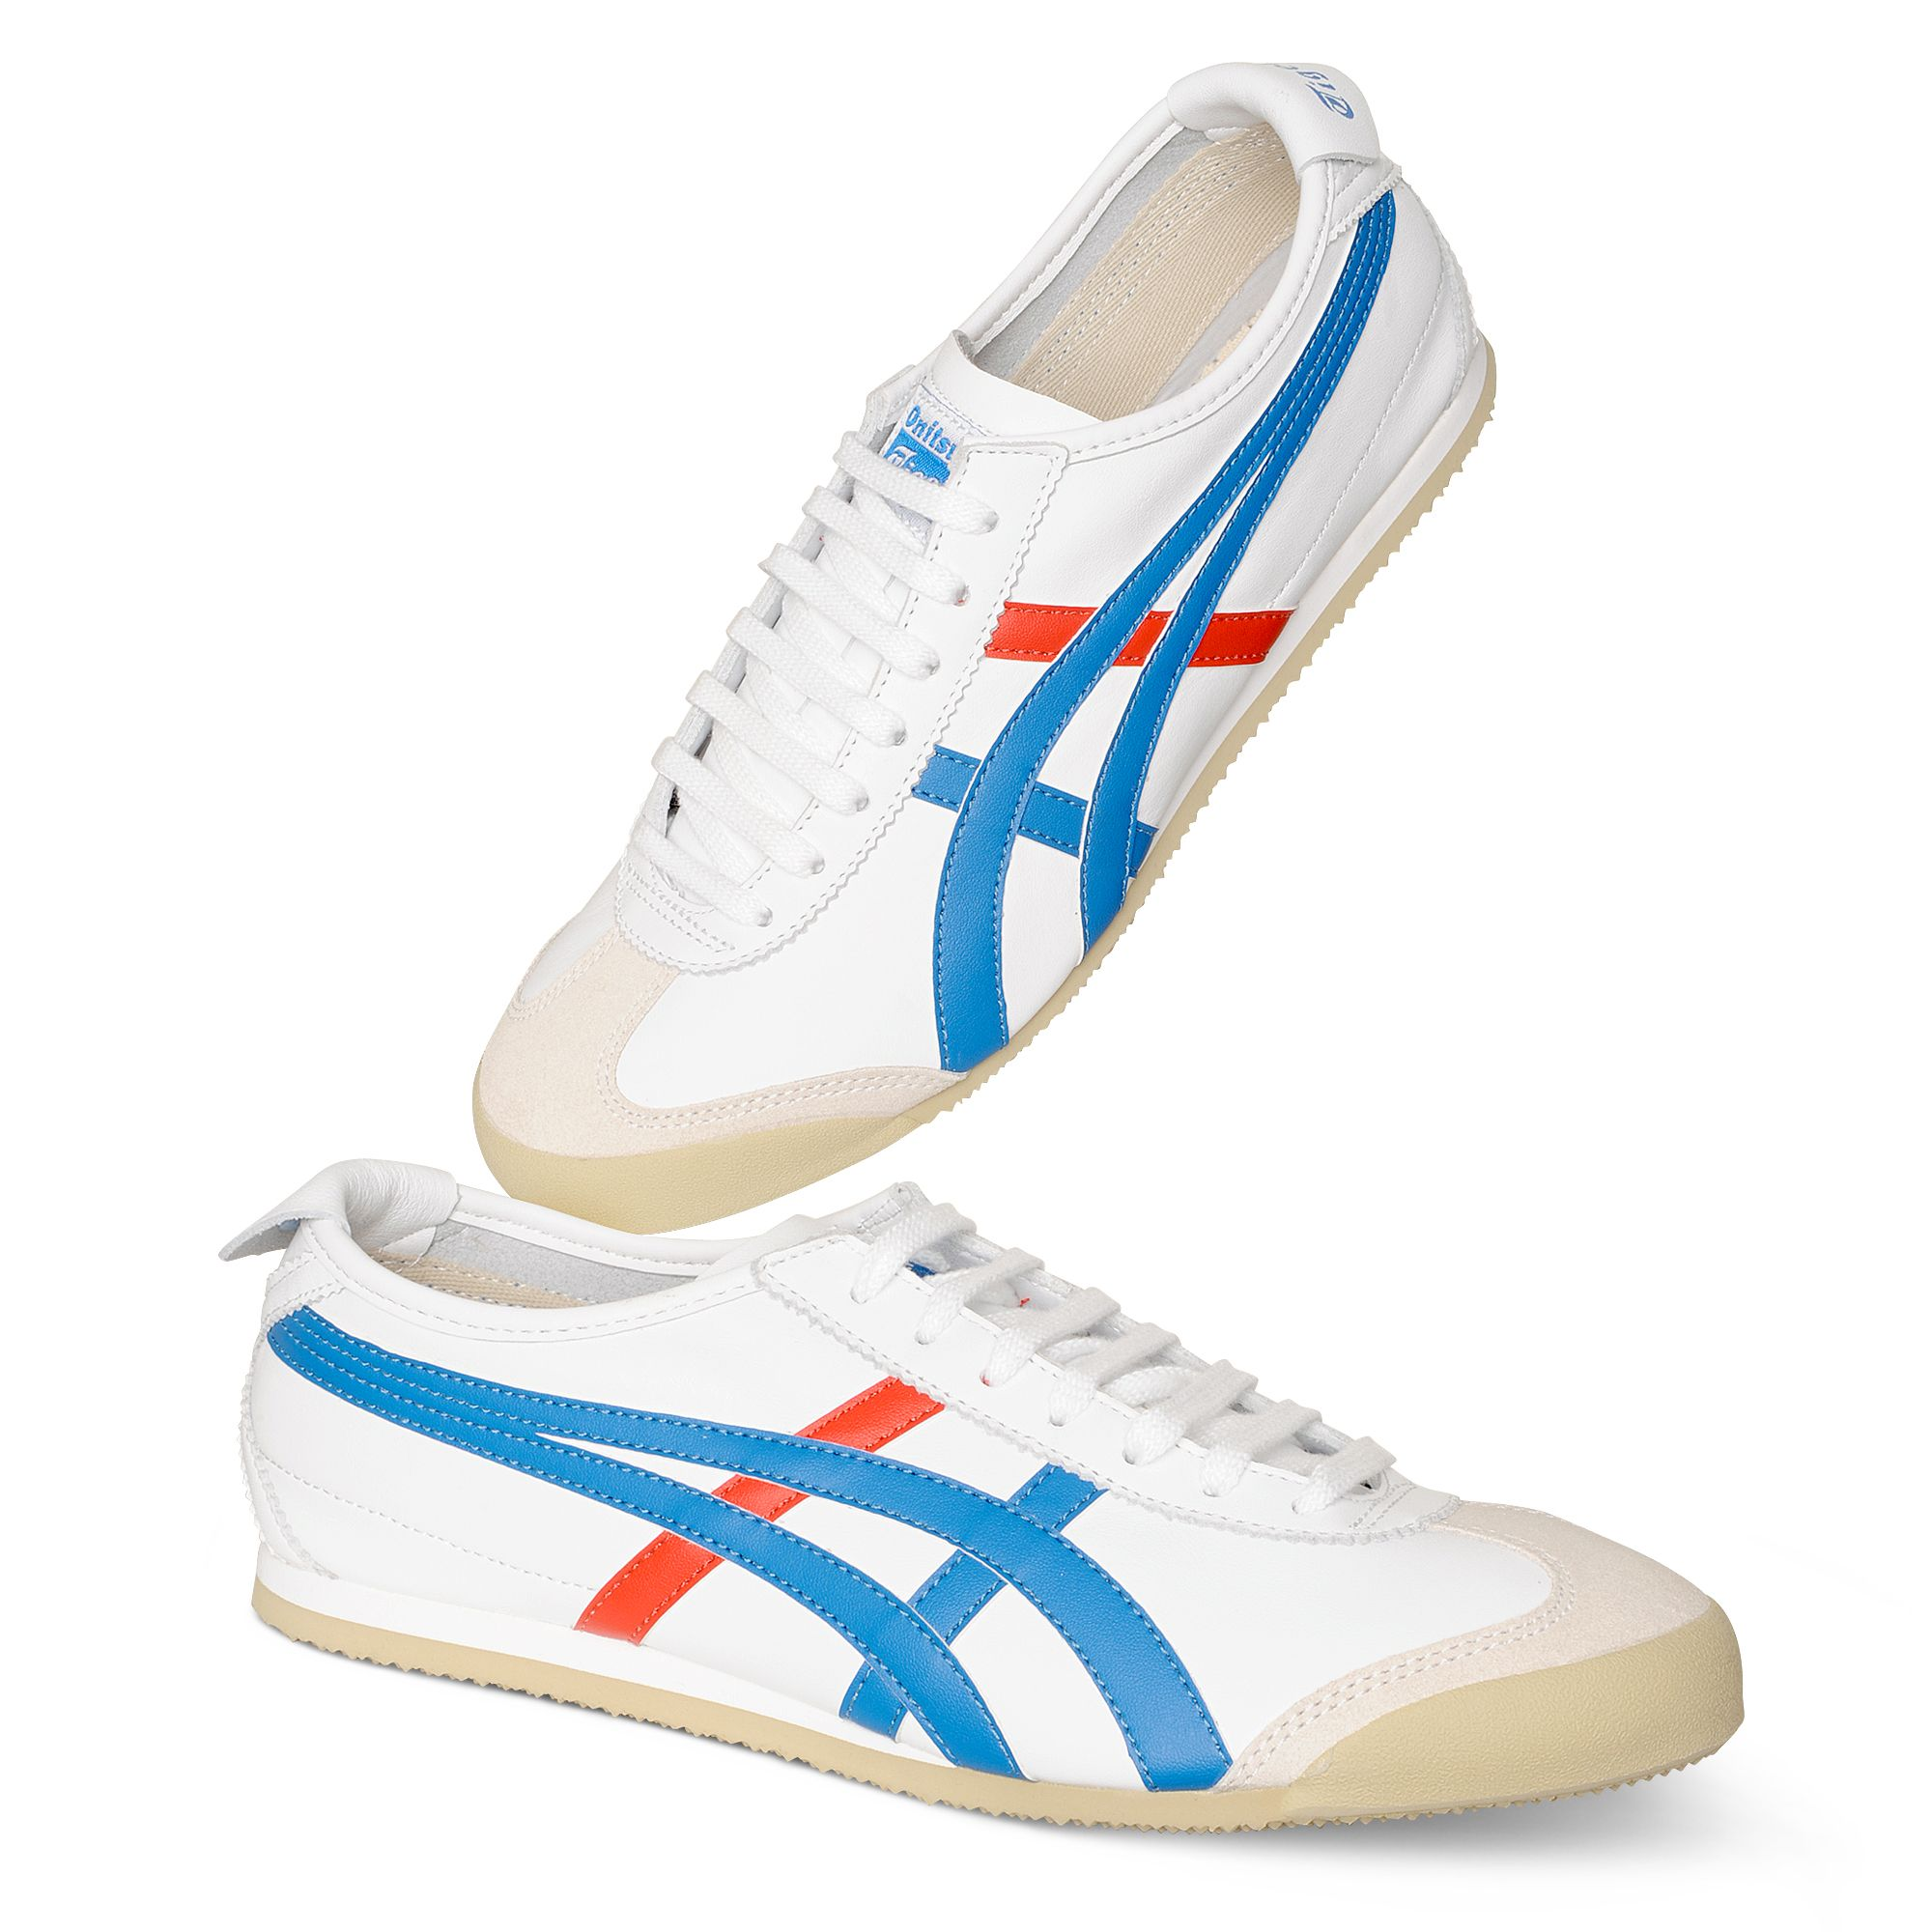 online store a94cb 1258c Onitsuka Tiger Mexico 66 Vintage Trainers in Red (White) for ...